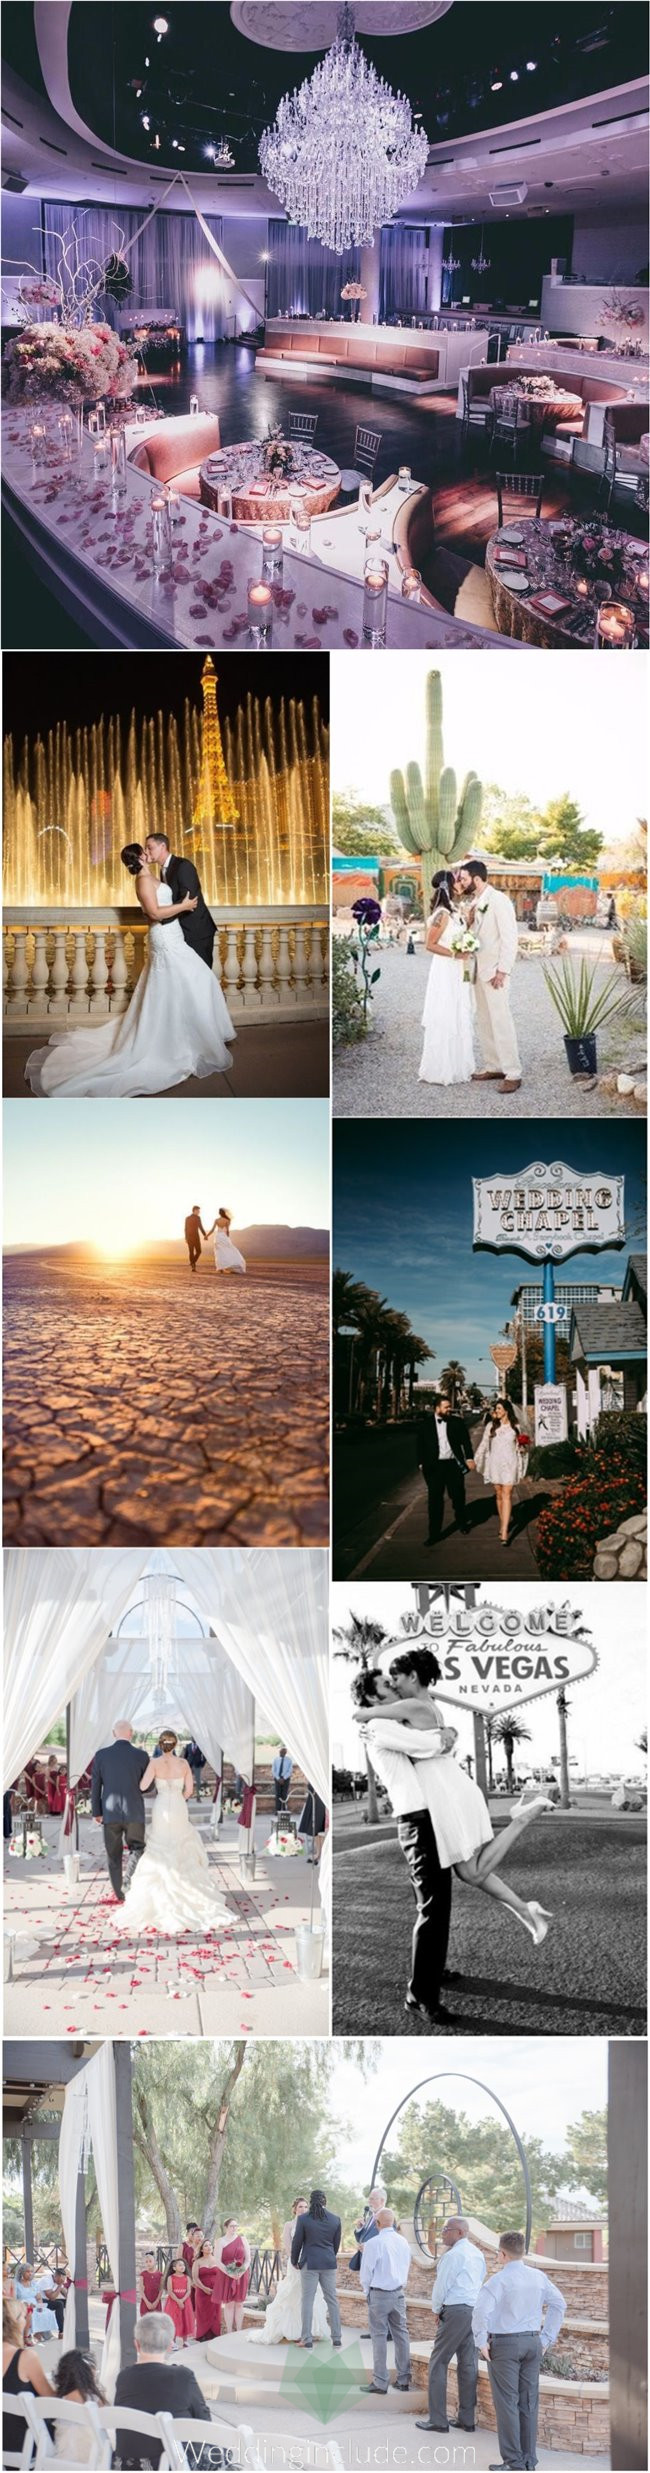 Las Vegas Wedding Ideas To Embrace